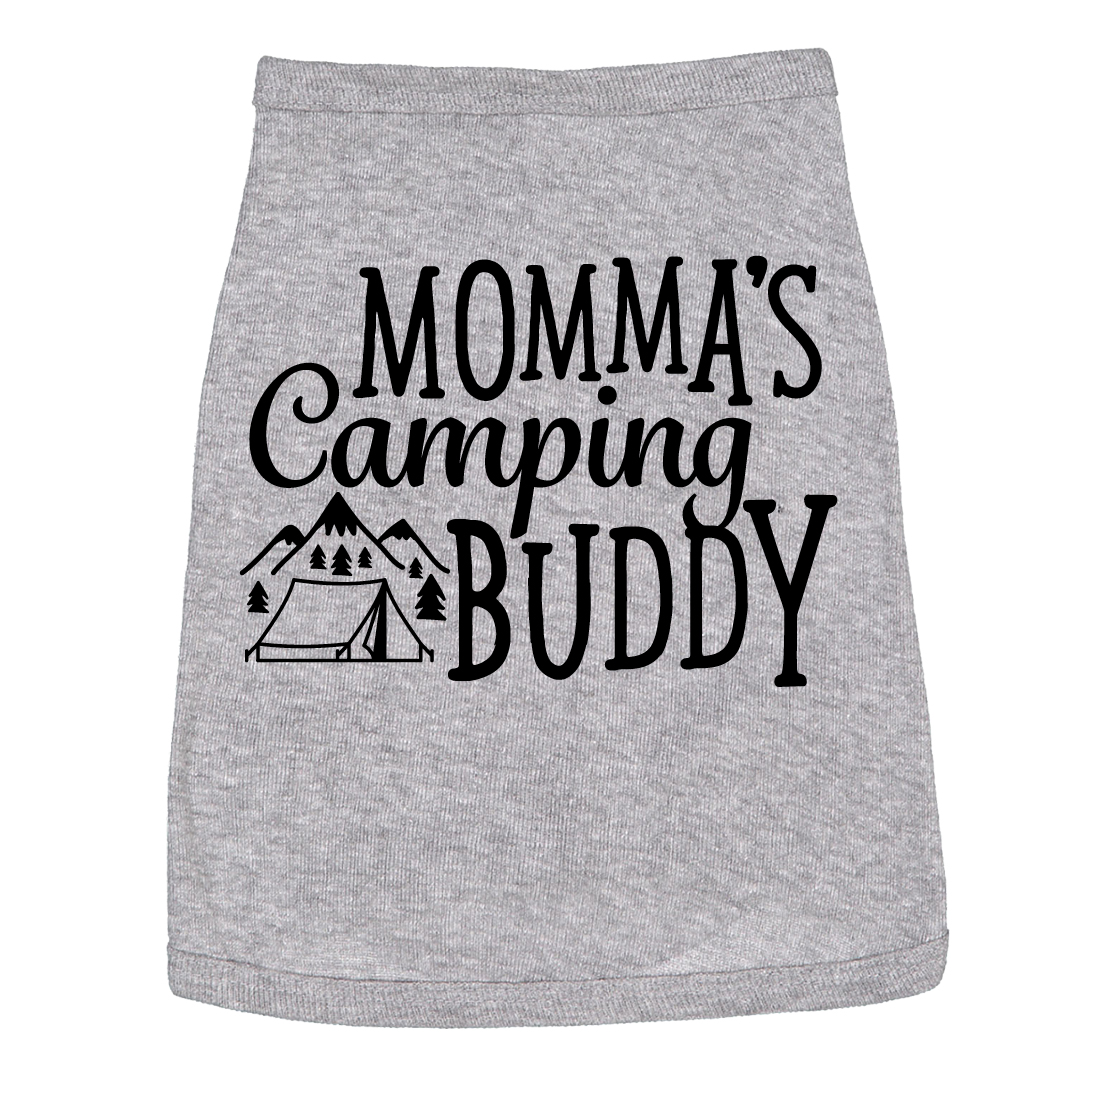 Dog Shirt Mommas Camping Buddy Cute Clothes For Pet Puppy